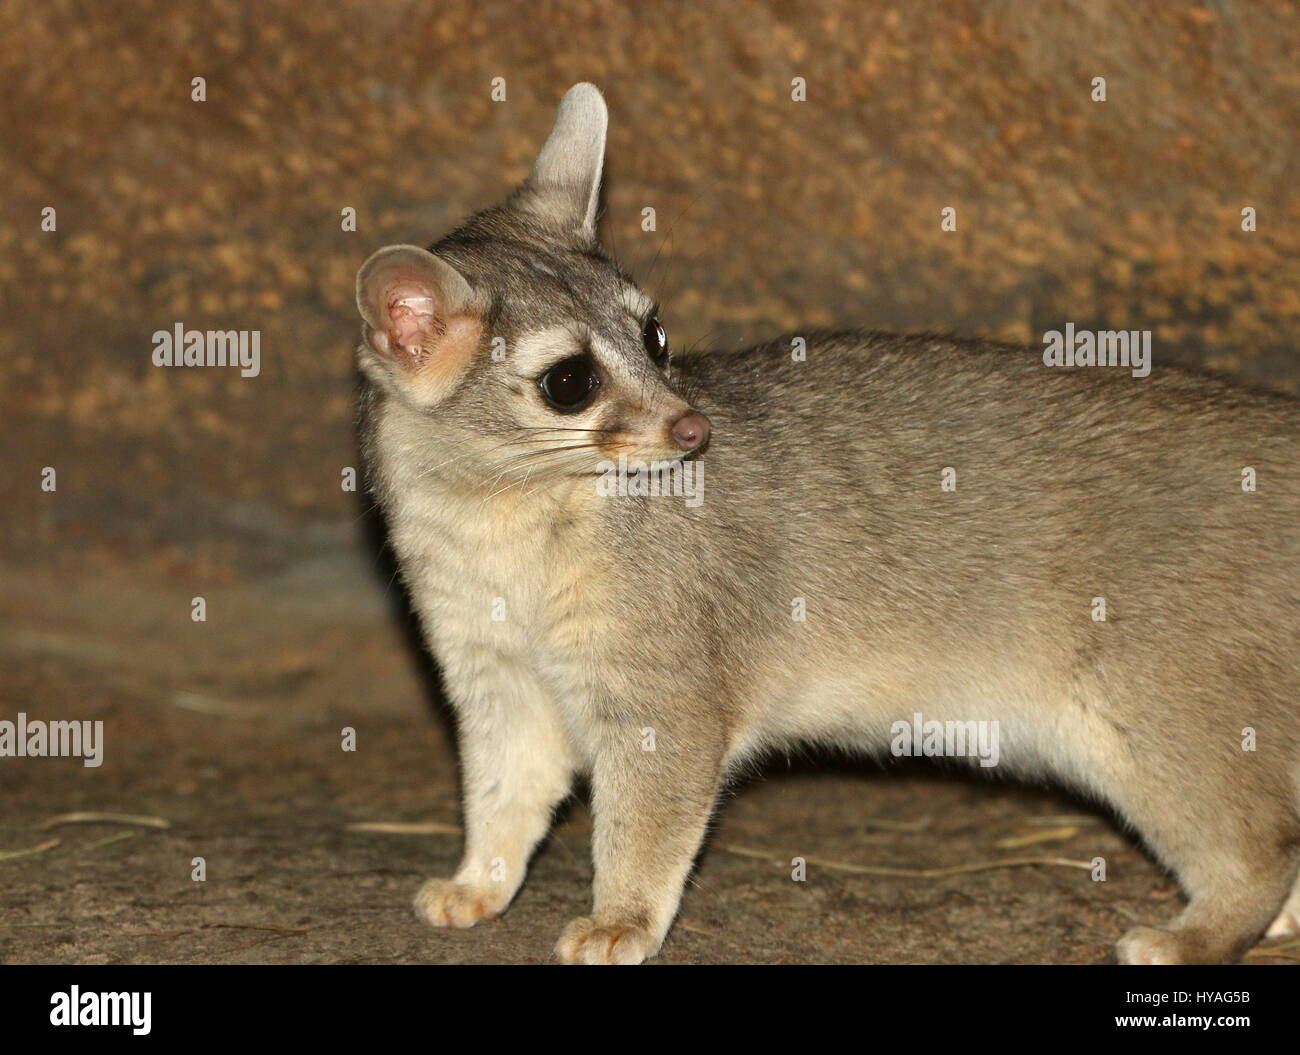 Alert male North American / Mexican Ring-tailed cat (Bassariscus astutus). - Stock Image